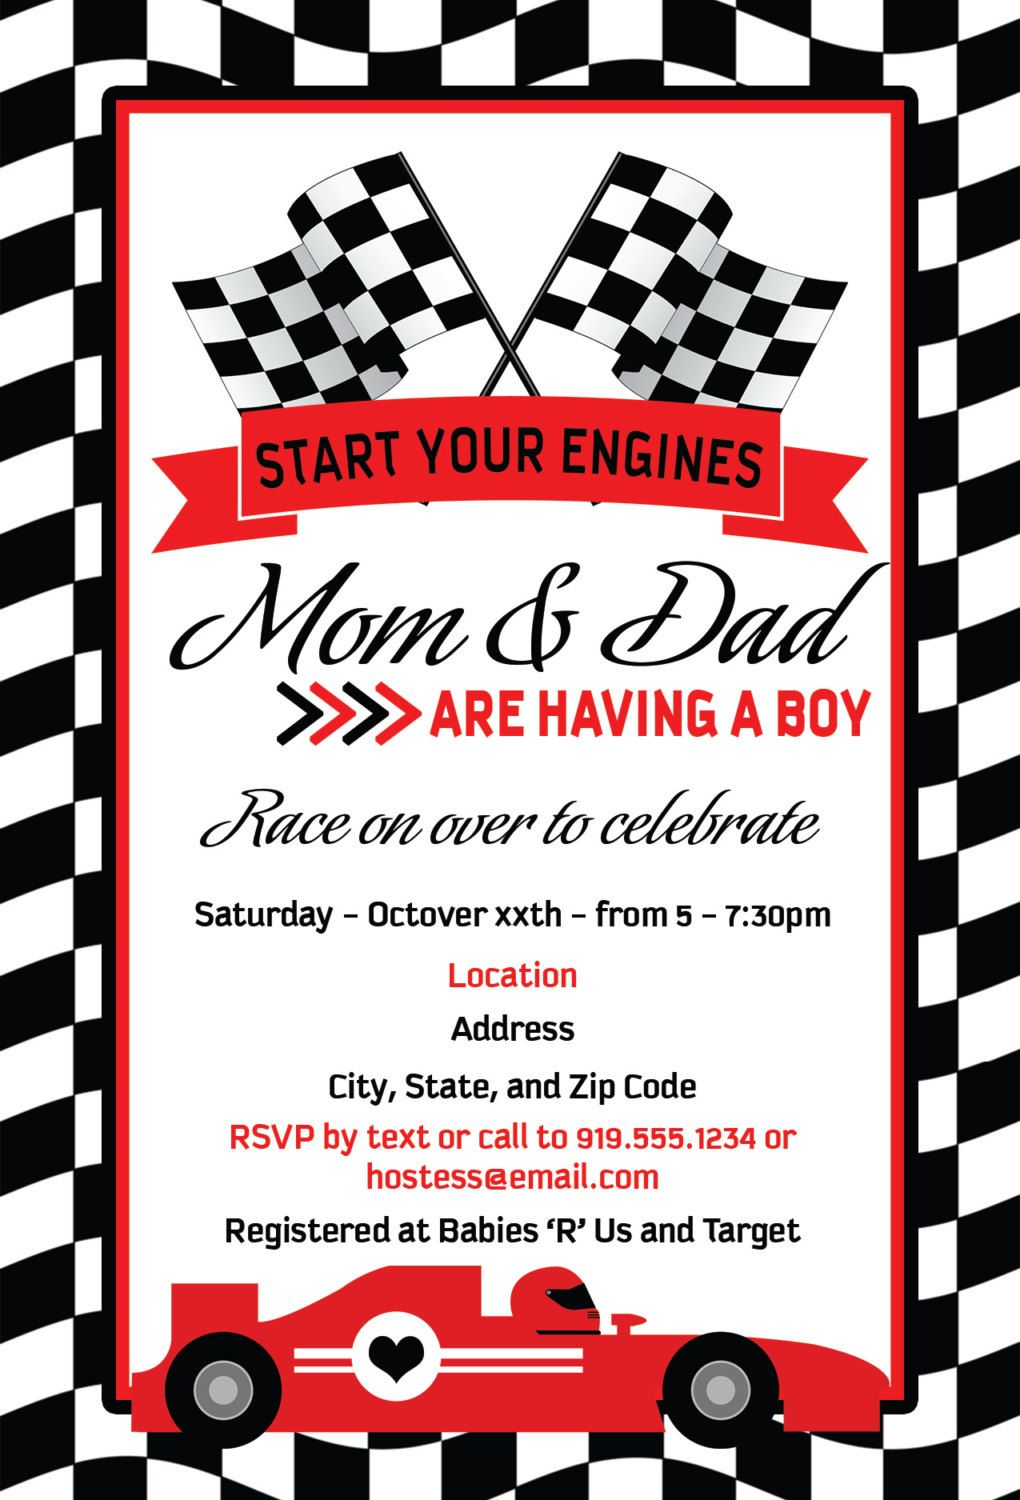 Start Your Engines Baby Shower | Baby Shower Invites | Pinterest ...